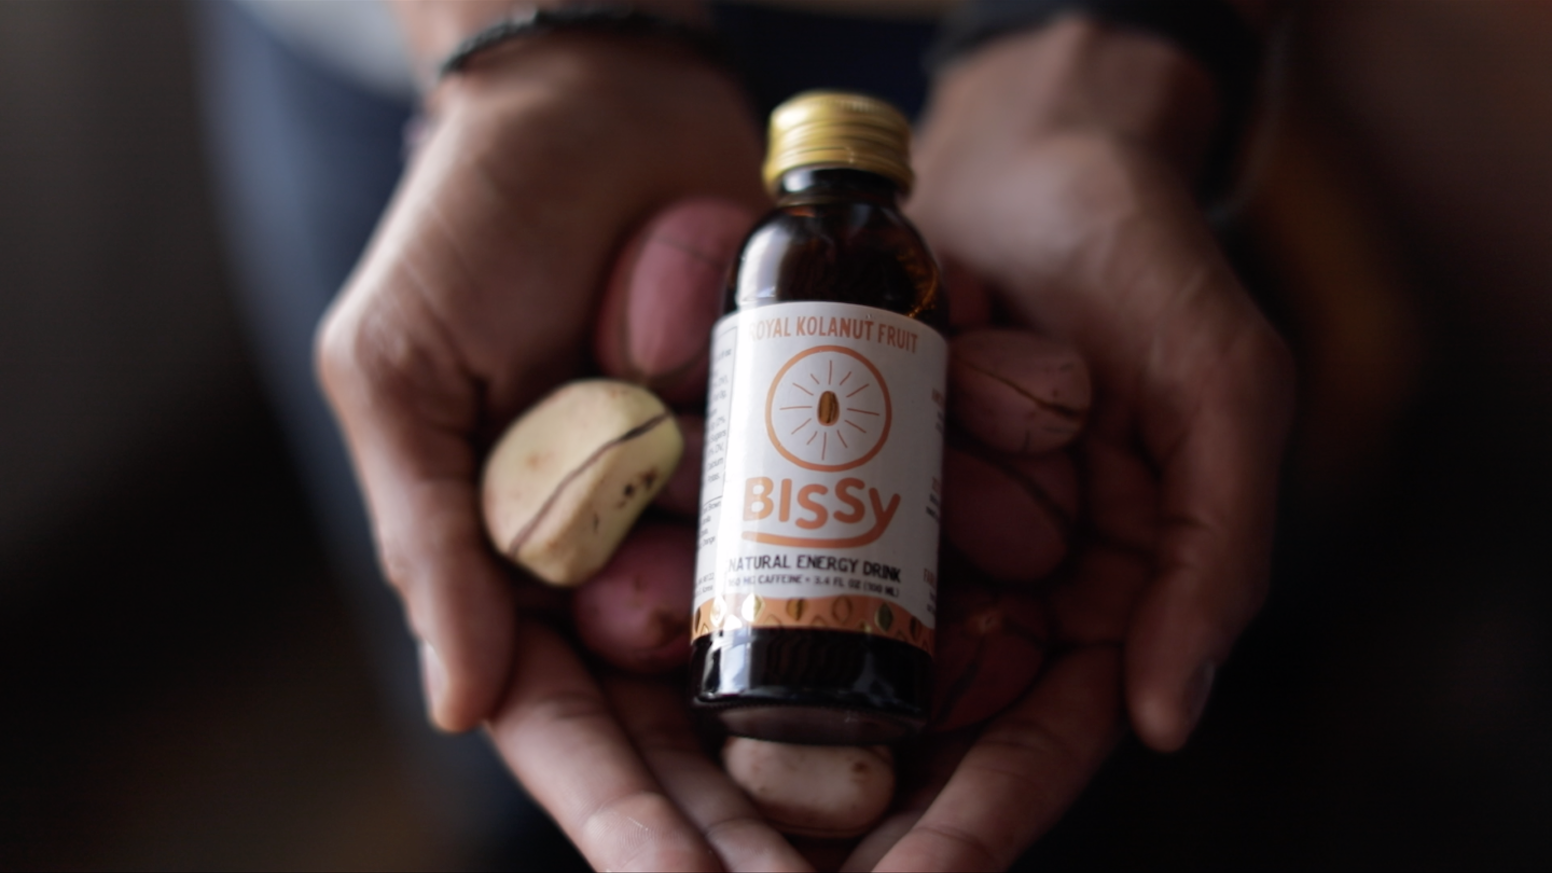 Bissy is the only healthy, plant based energy drink using natural caffeine from the ancient Nigerian kolanut fruit